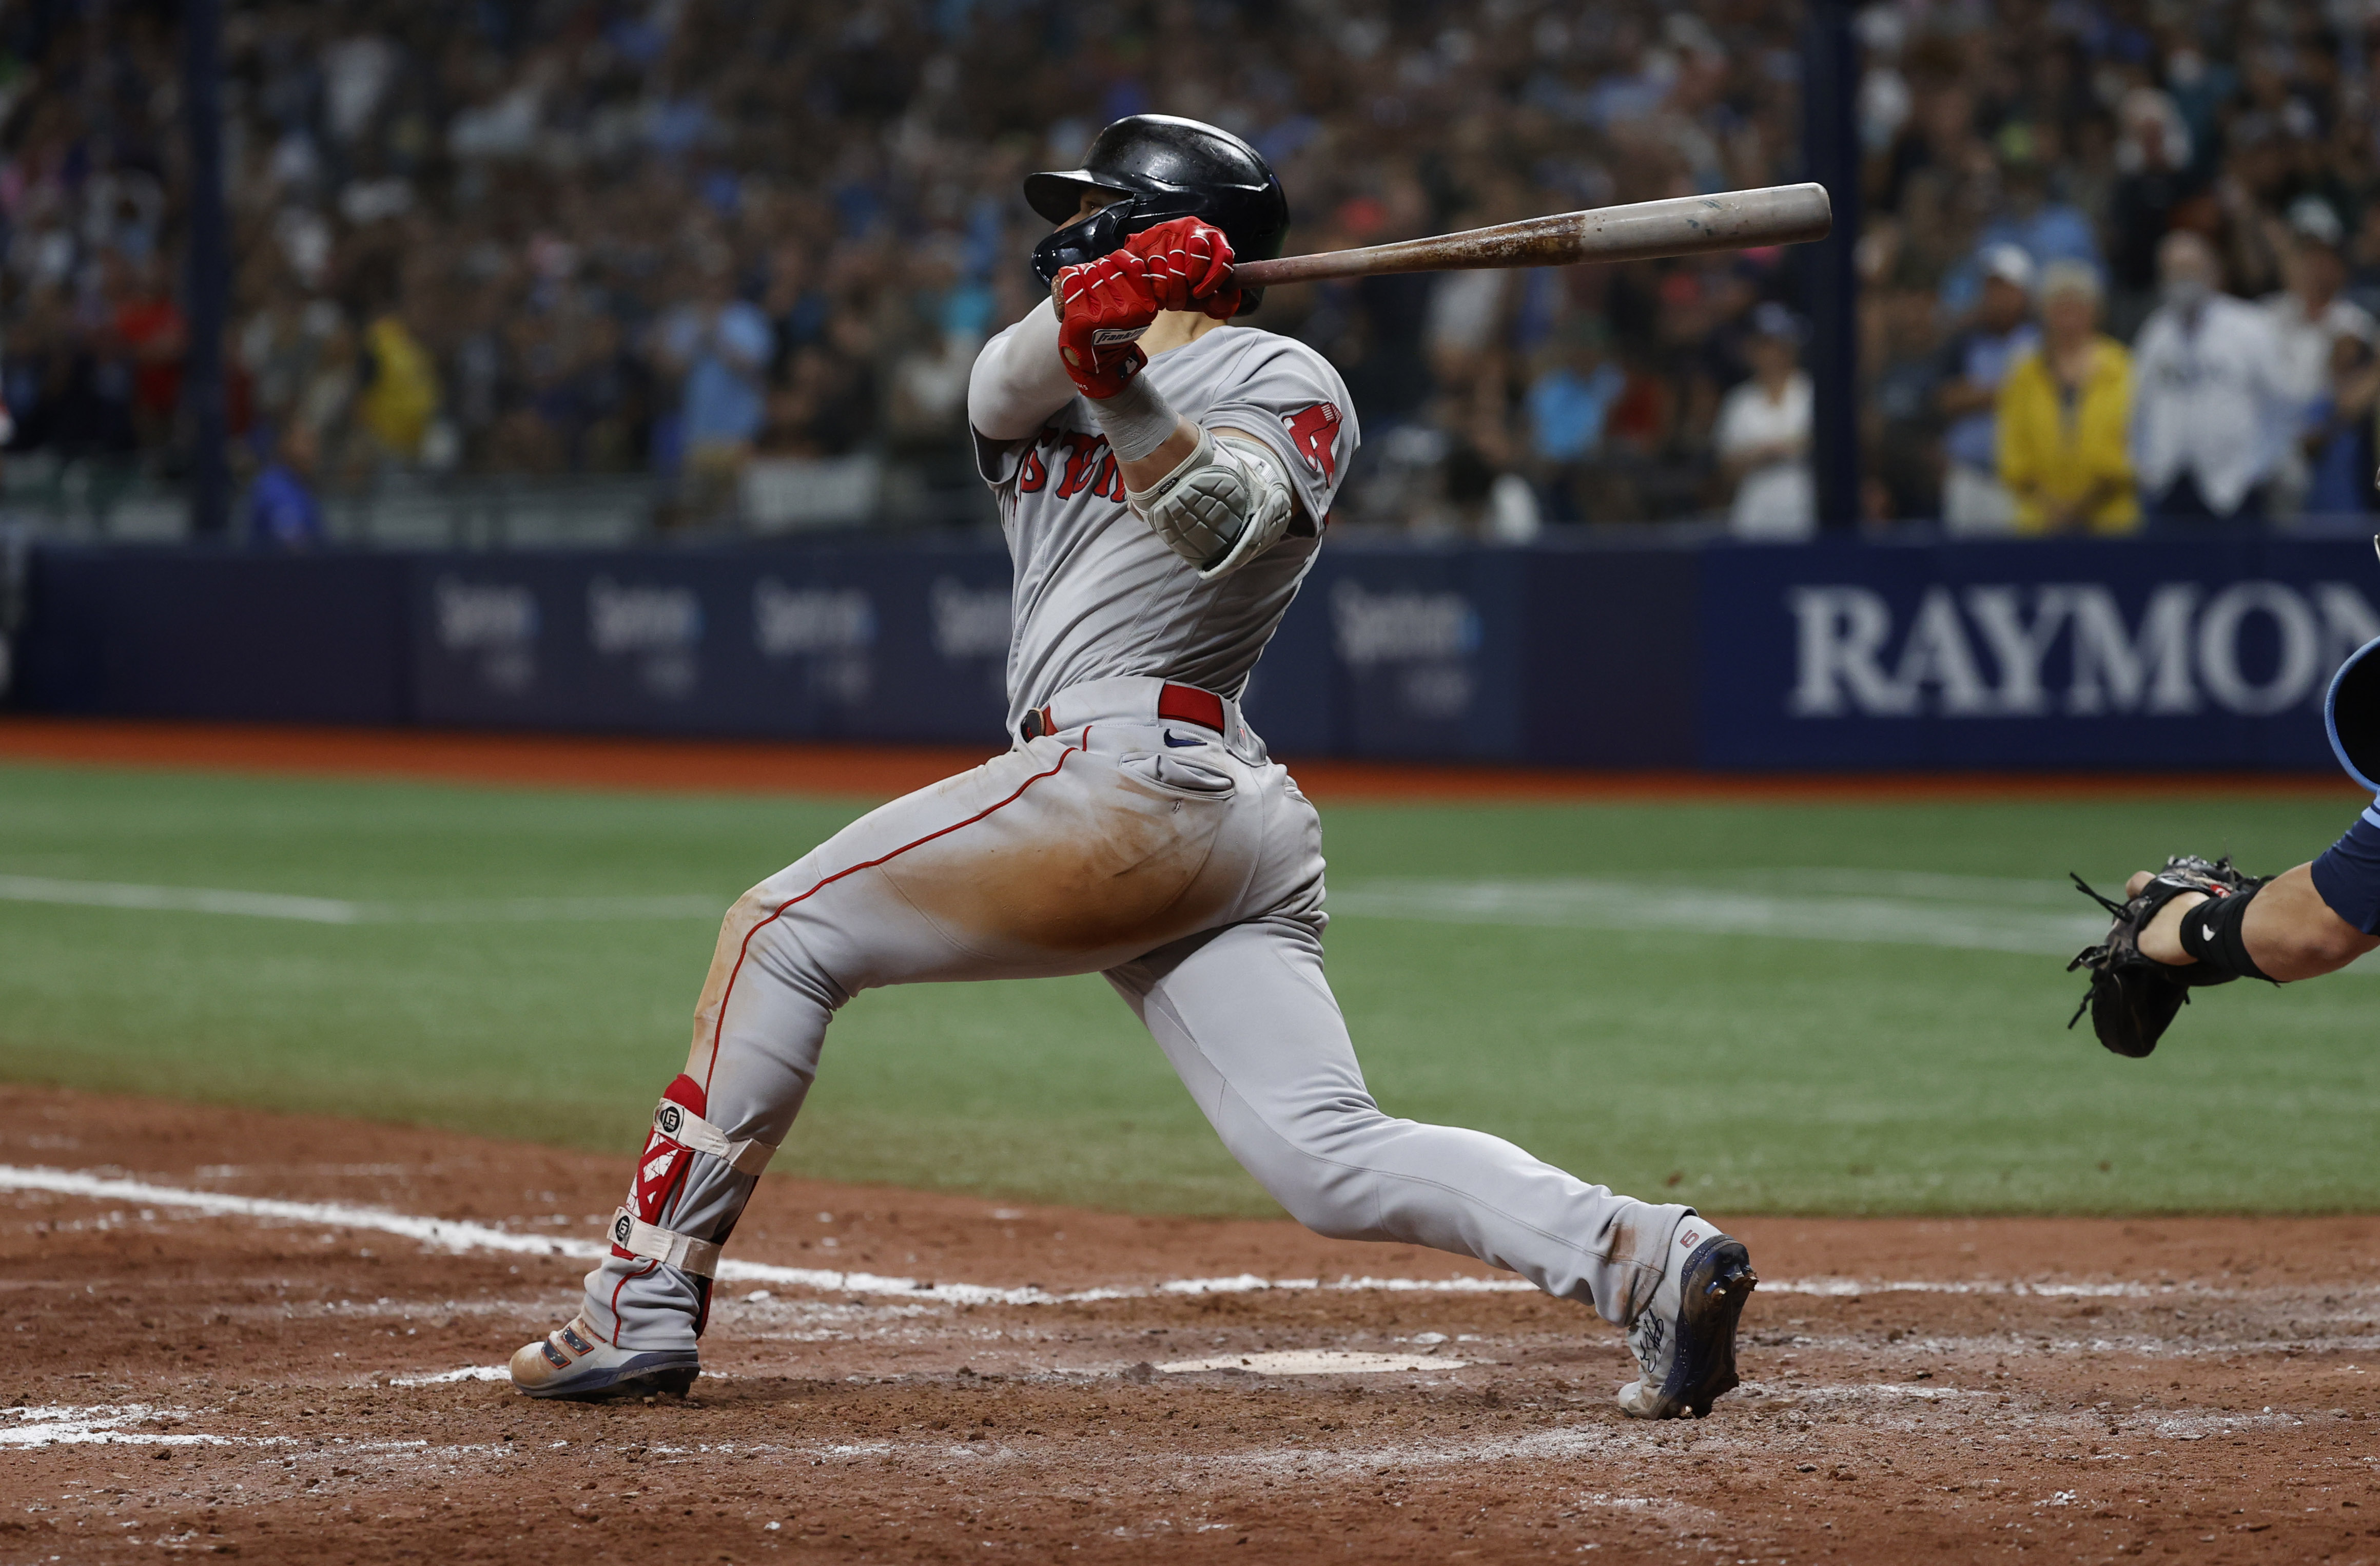 Aug 1, 2021; St. Petersburg, Florida, USA; Boston Red Sox center fielder Enrique Hernandez (5) singles during the ninth inning against the Tampa Bay Rays at Tropicana Field. Mandatory Credit: Kim Klement-USA TODAY Sports